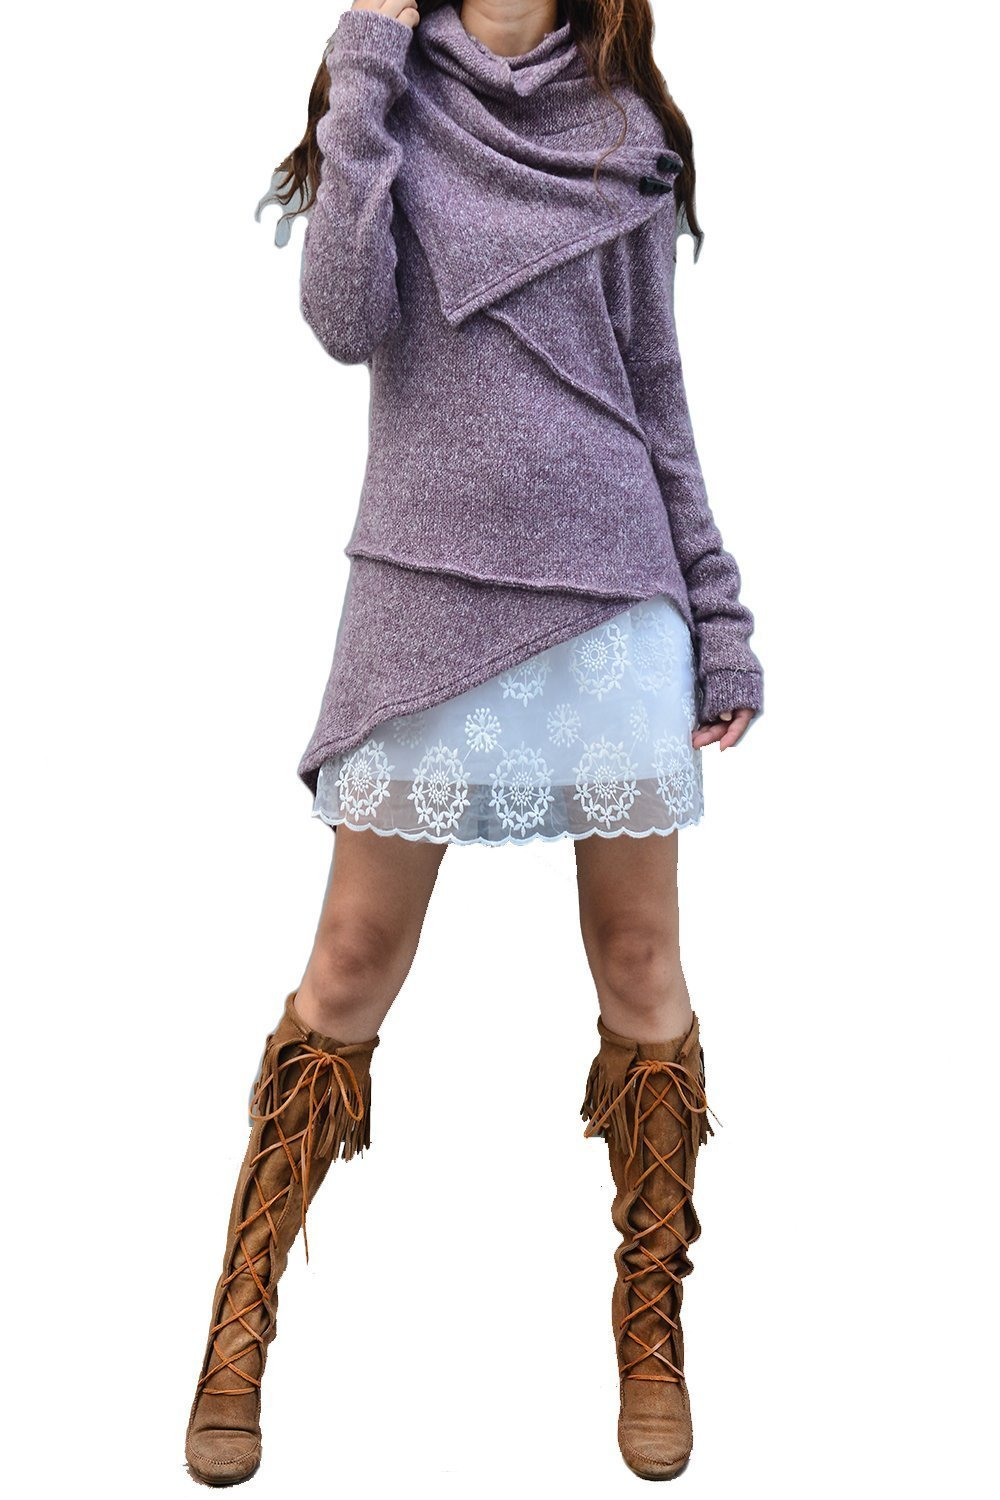 Women's Asymmetrical Knit Sweater Light Purple